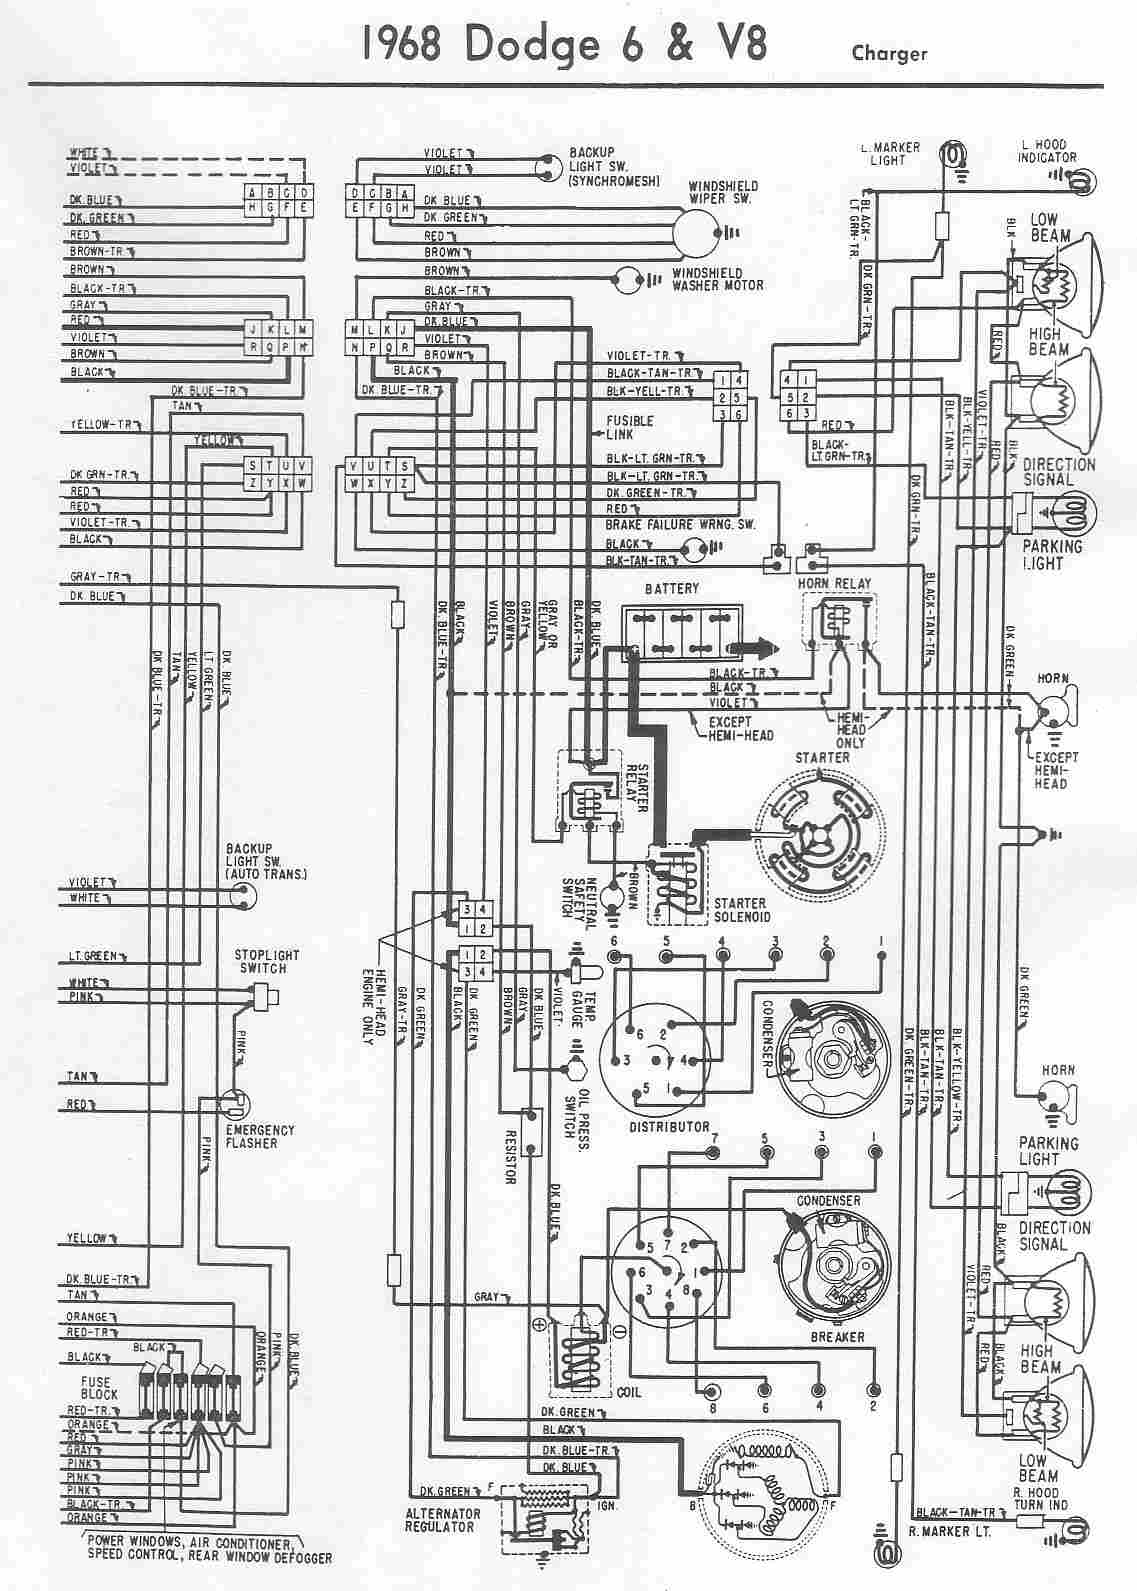 1966 dodge dart ignition wiring diagram wiring diagram source rh 13 1 2 logistra net de 1972 dodge challenger ignition wiring diagram 1972 dodge dart demon [ 1137 x 1591 Pixel ]